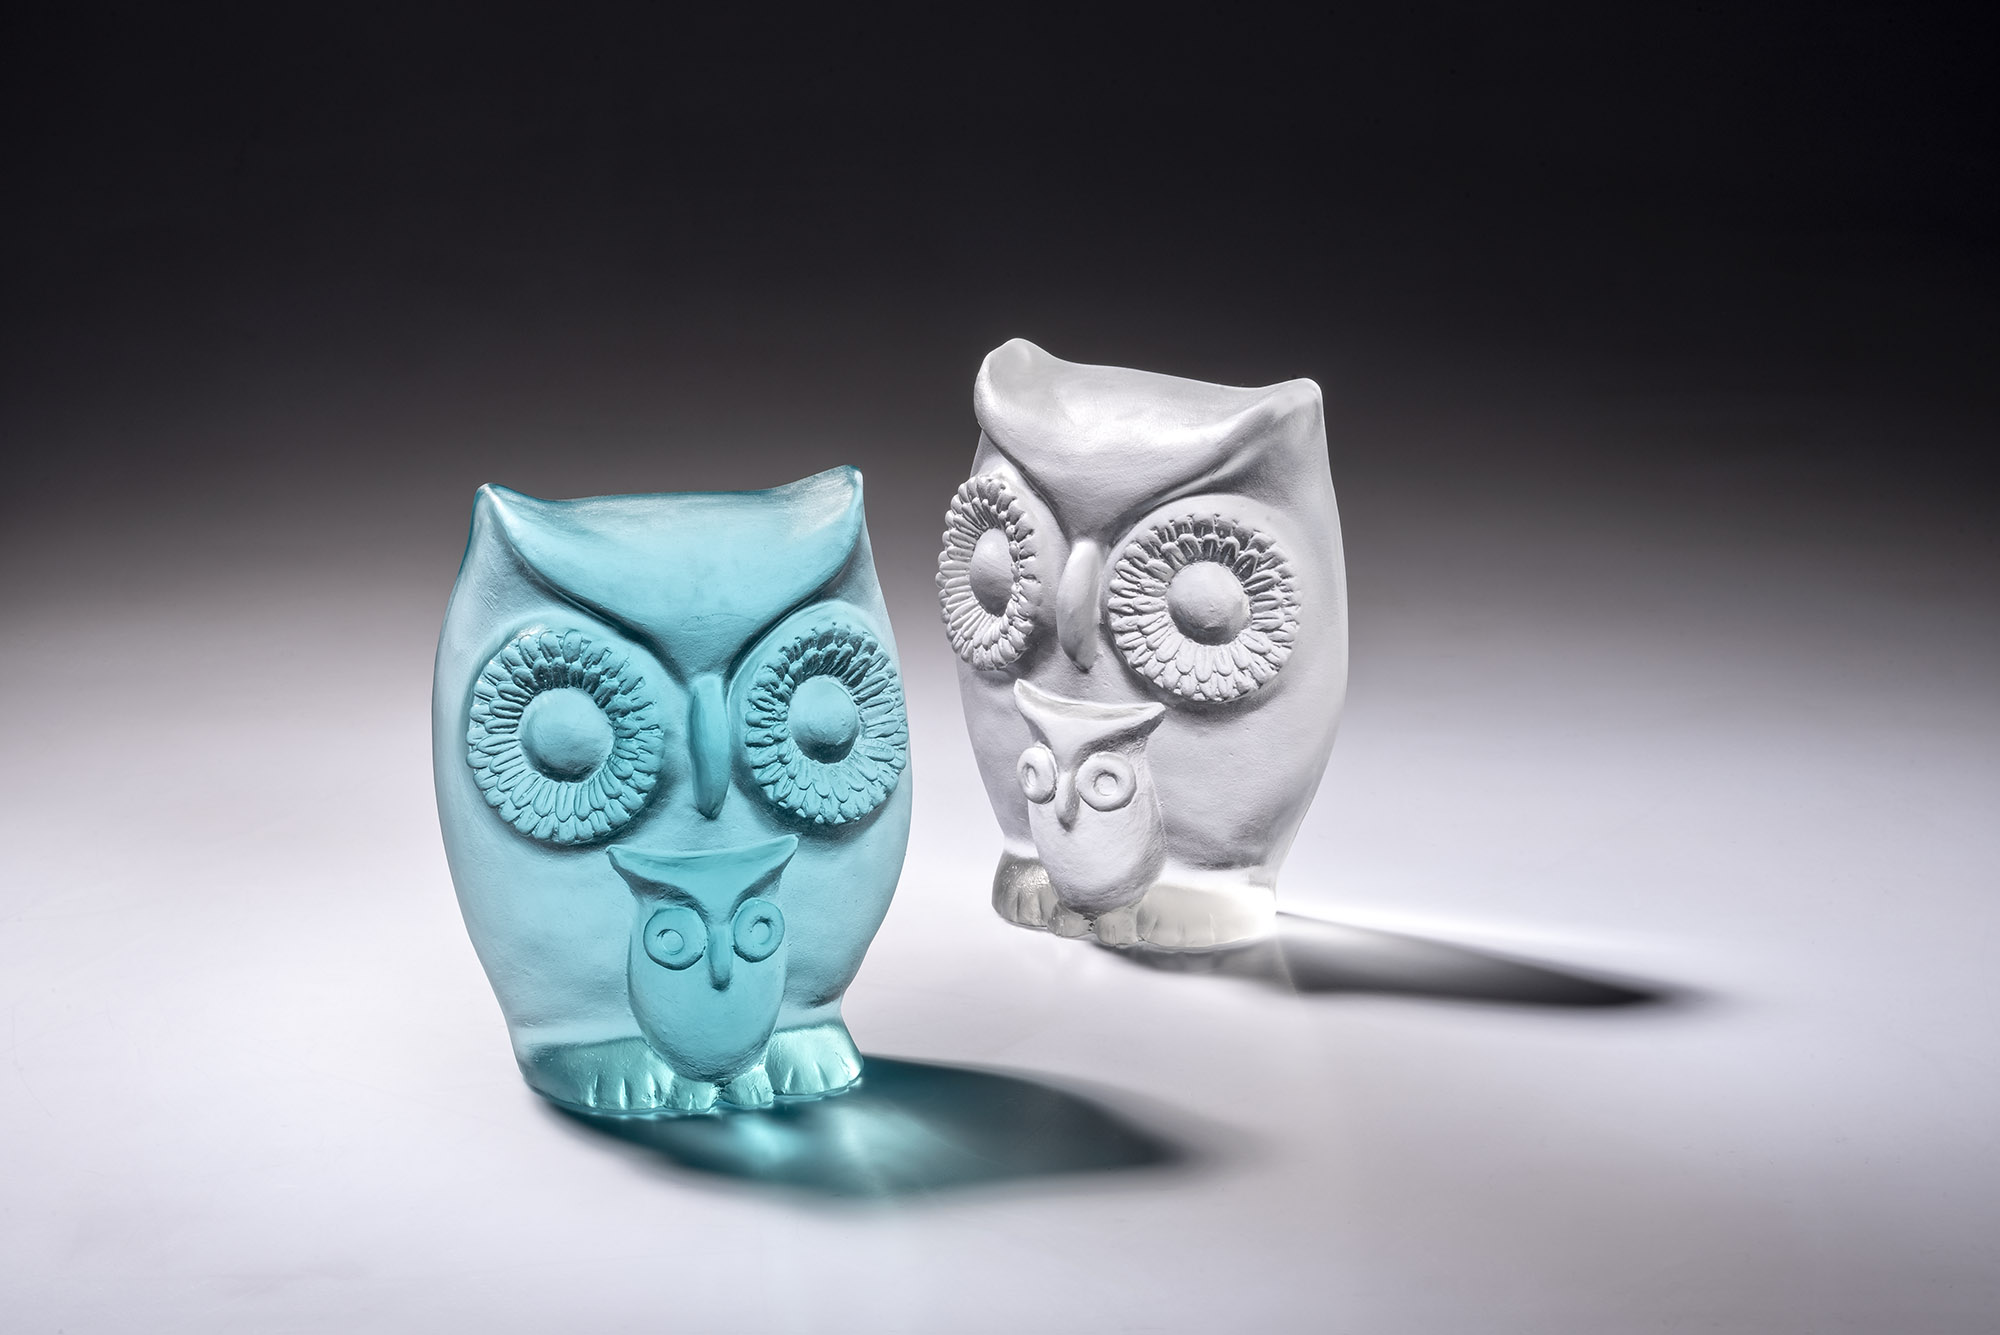 Owl with her baby in turquoise blue and clear casted glass